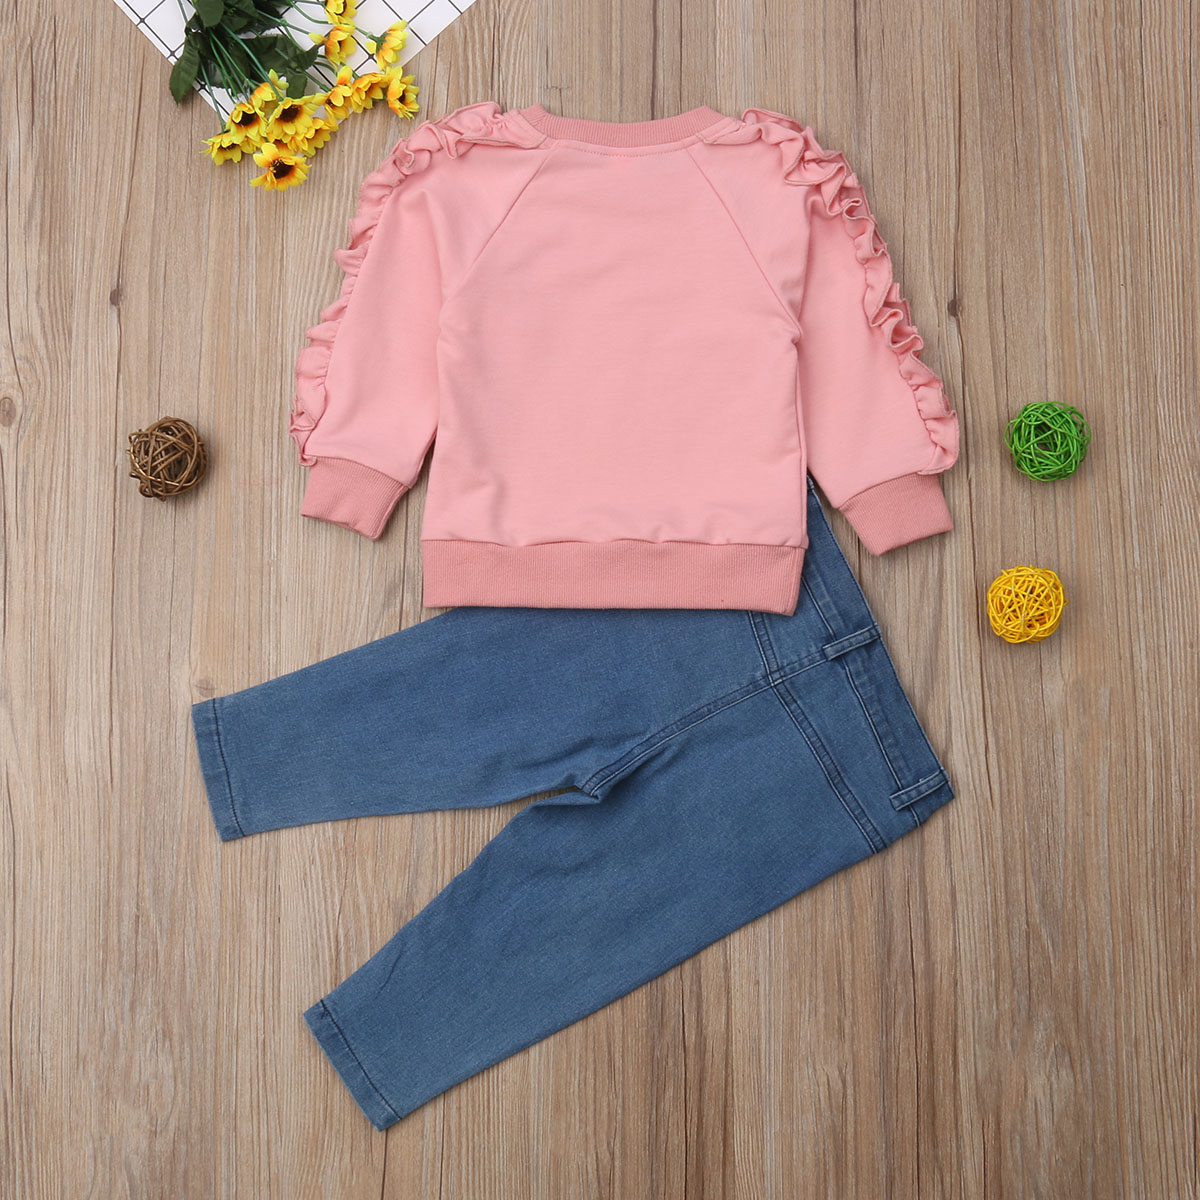 Pudcoco New Fashion Toddler Kids Baby Girl Ruffle Tops Shirt Denim Pants Jeans Warm Outfits Clothes For Girls Repemm